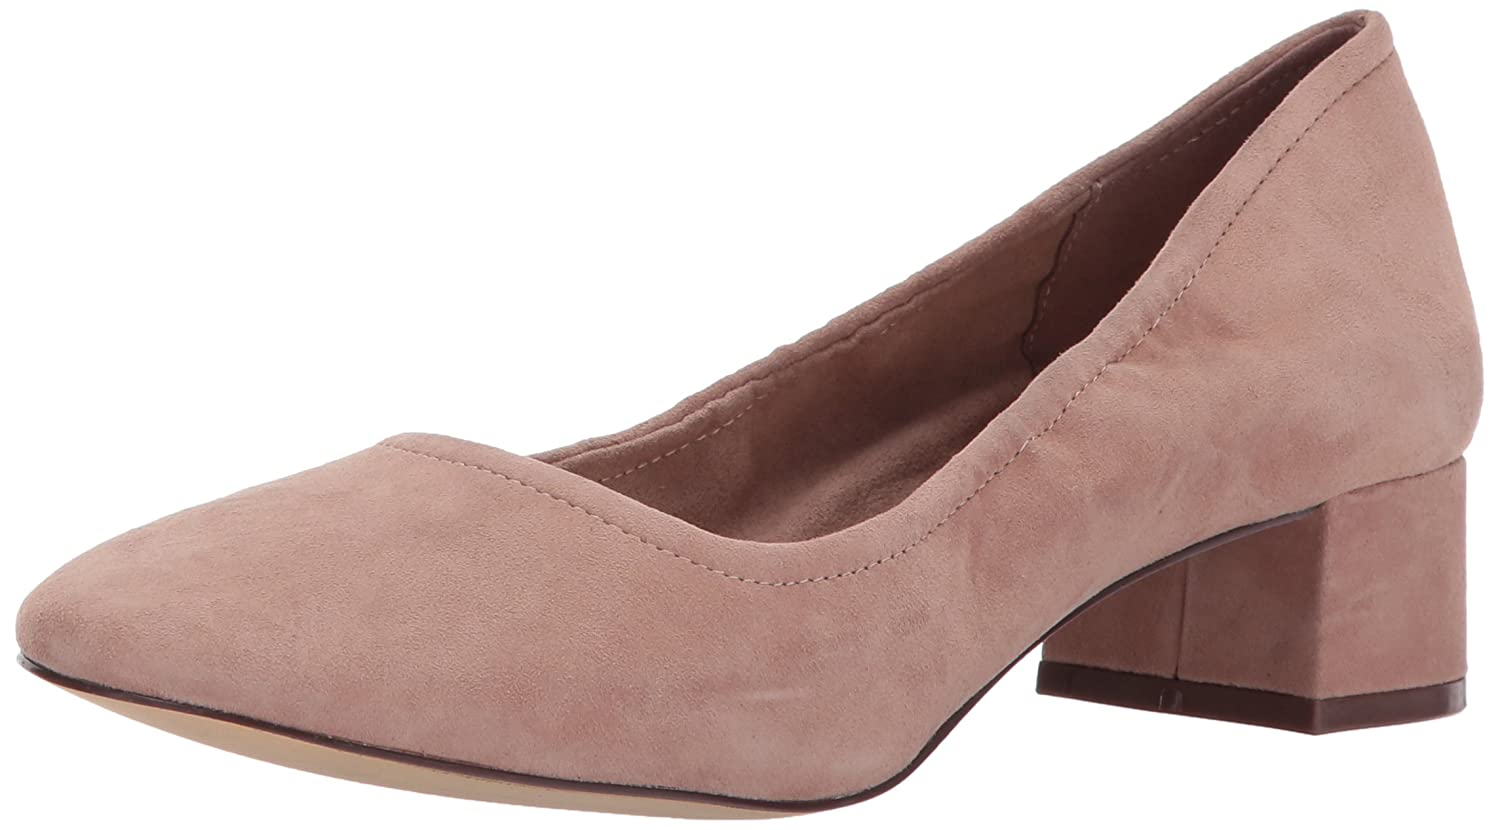 Nine West Women's Edwards Suede Ballet Flat B06XKYRBVG 11.5 B(M) US|Natural Suede